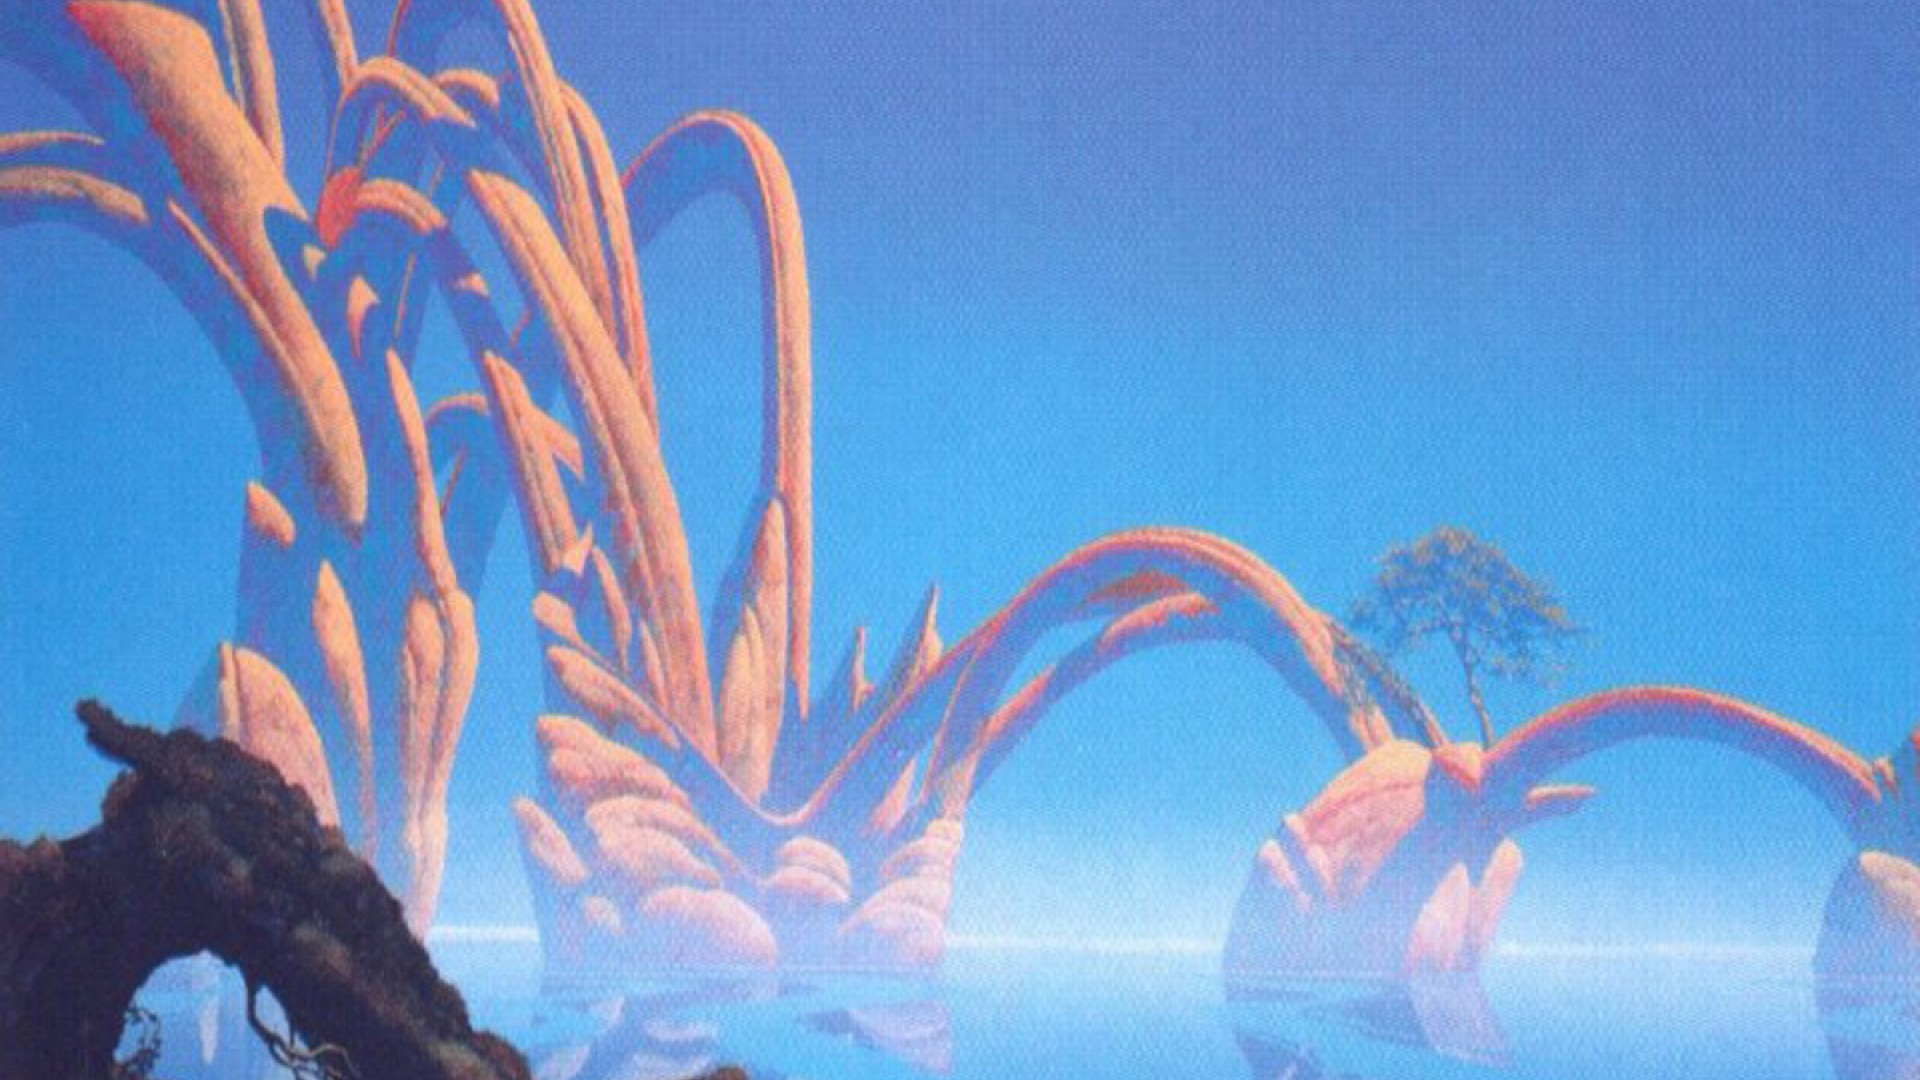 Free Download Roger Dean 1200x900 1920x1080 For Your Desktop